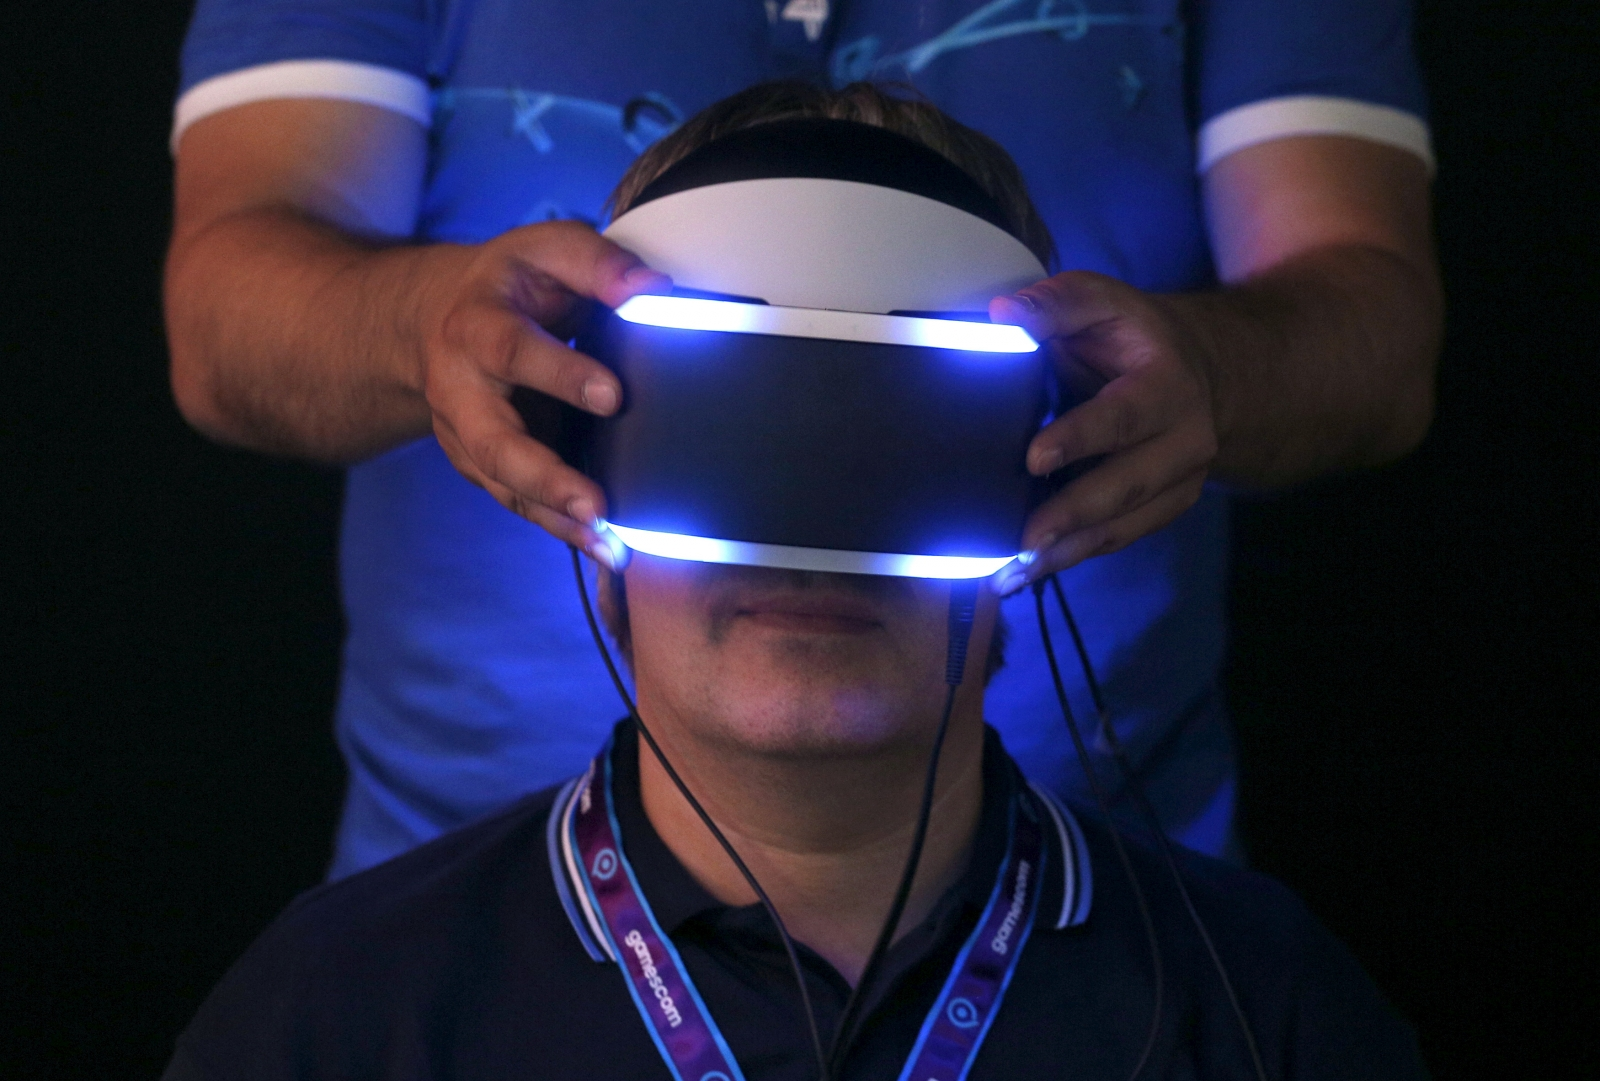 Vr Headset Comparison >> Sony patents wireless PlayStation VR system with HTC Vive ...